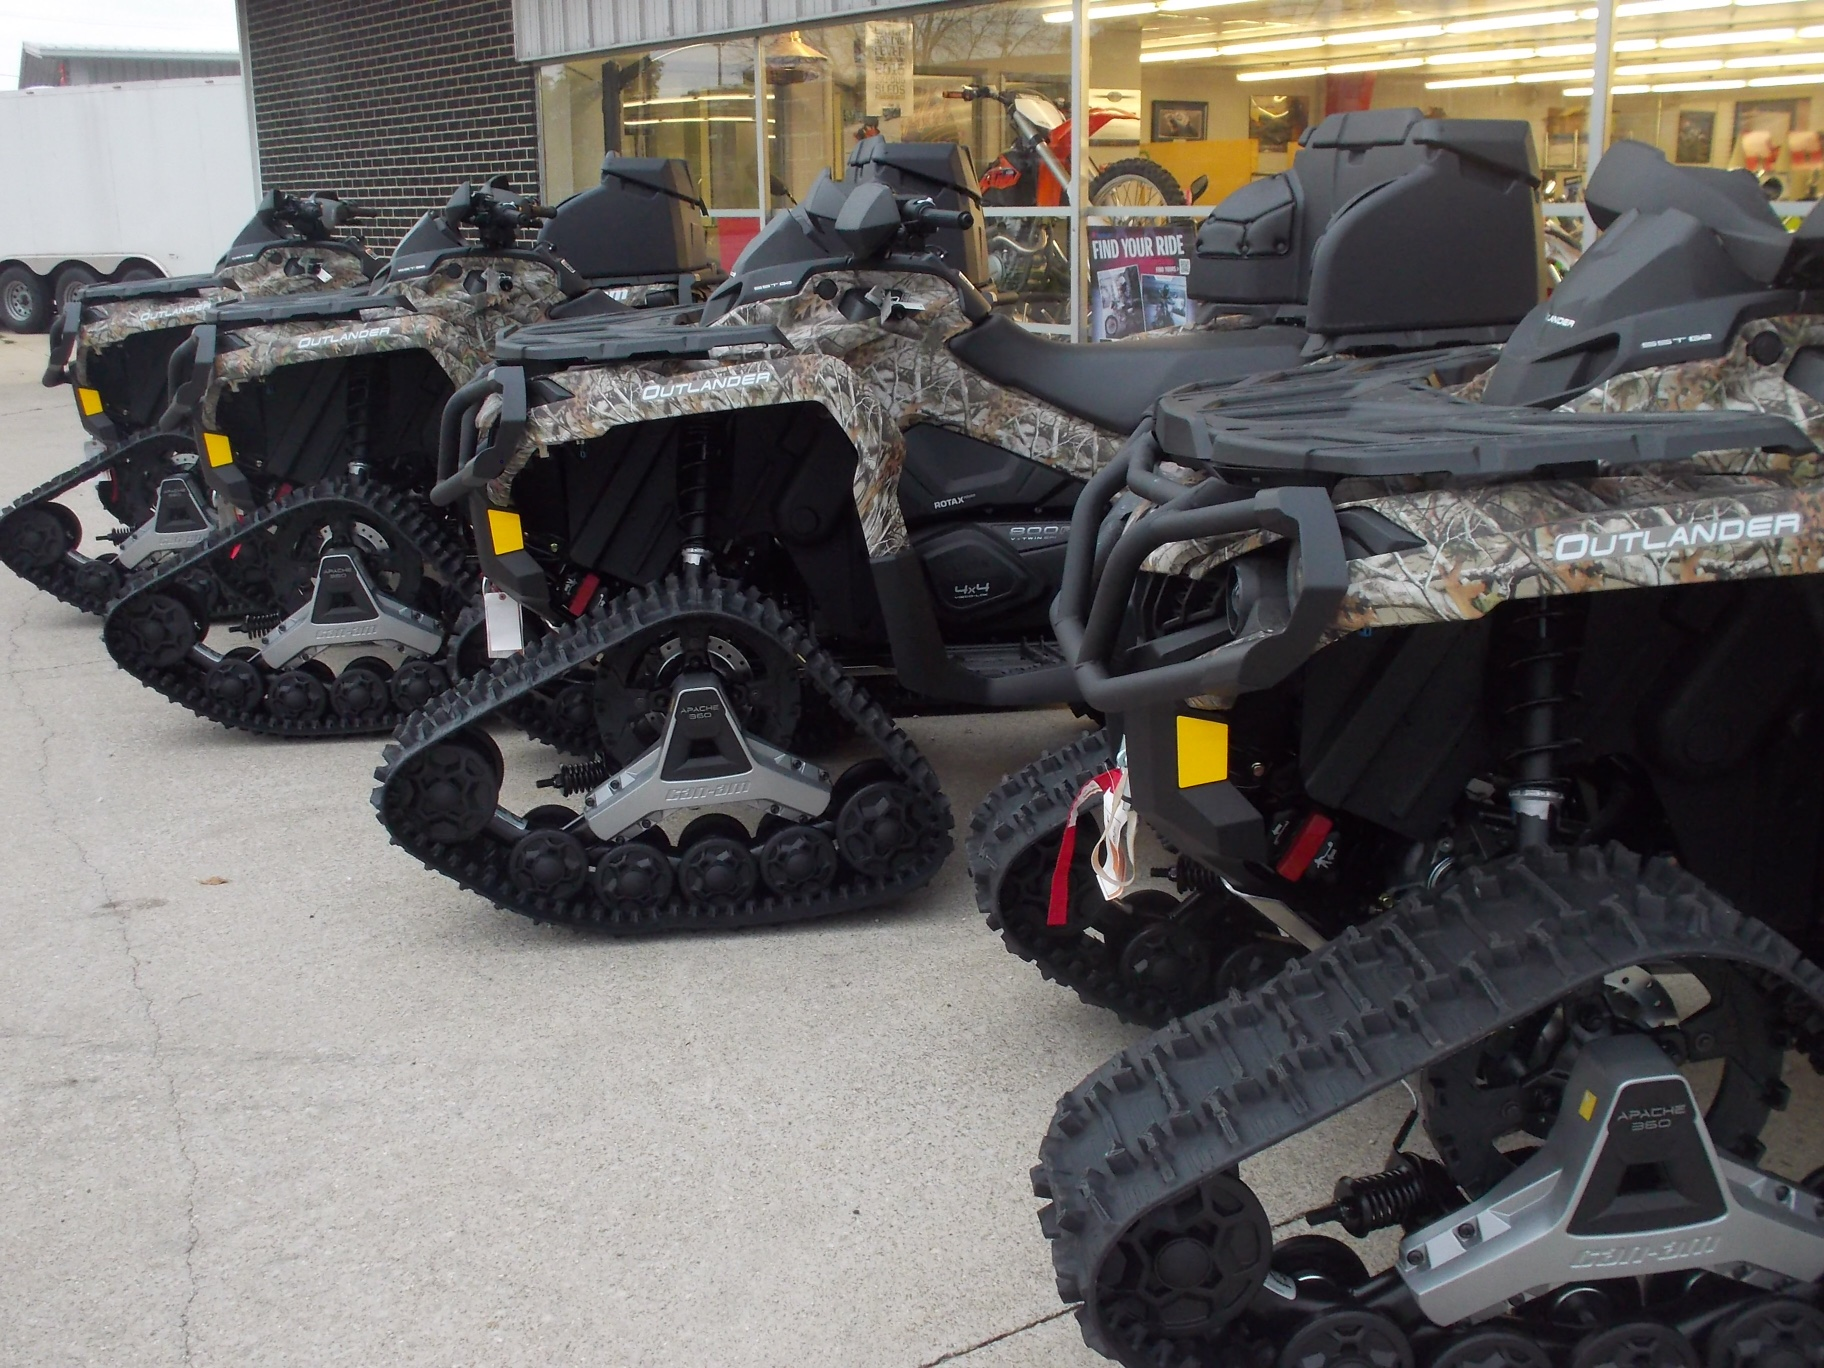 Yamaha Atv Accessories Grizzly MilitaryAtv.com -Company / Press Release